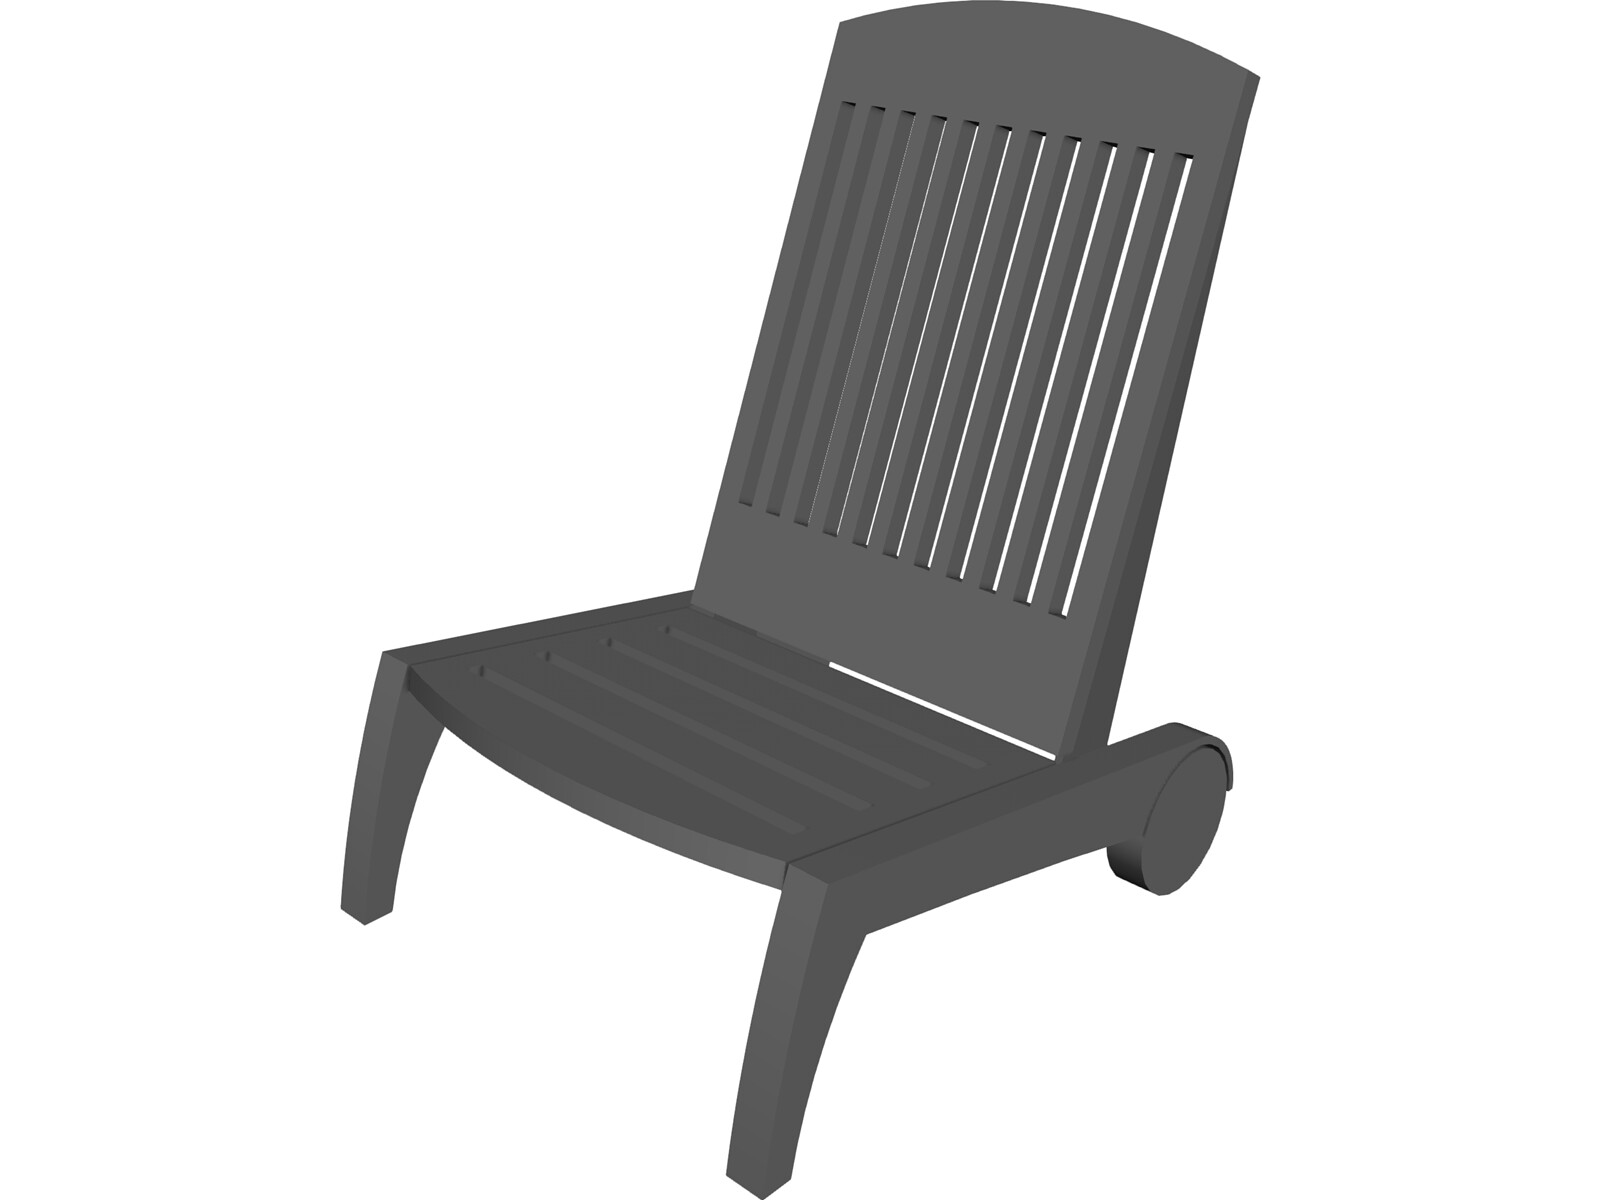 Swimming Pool Chair 3D Model